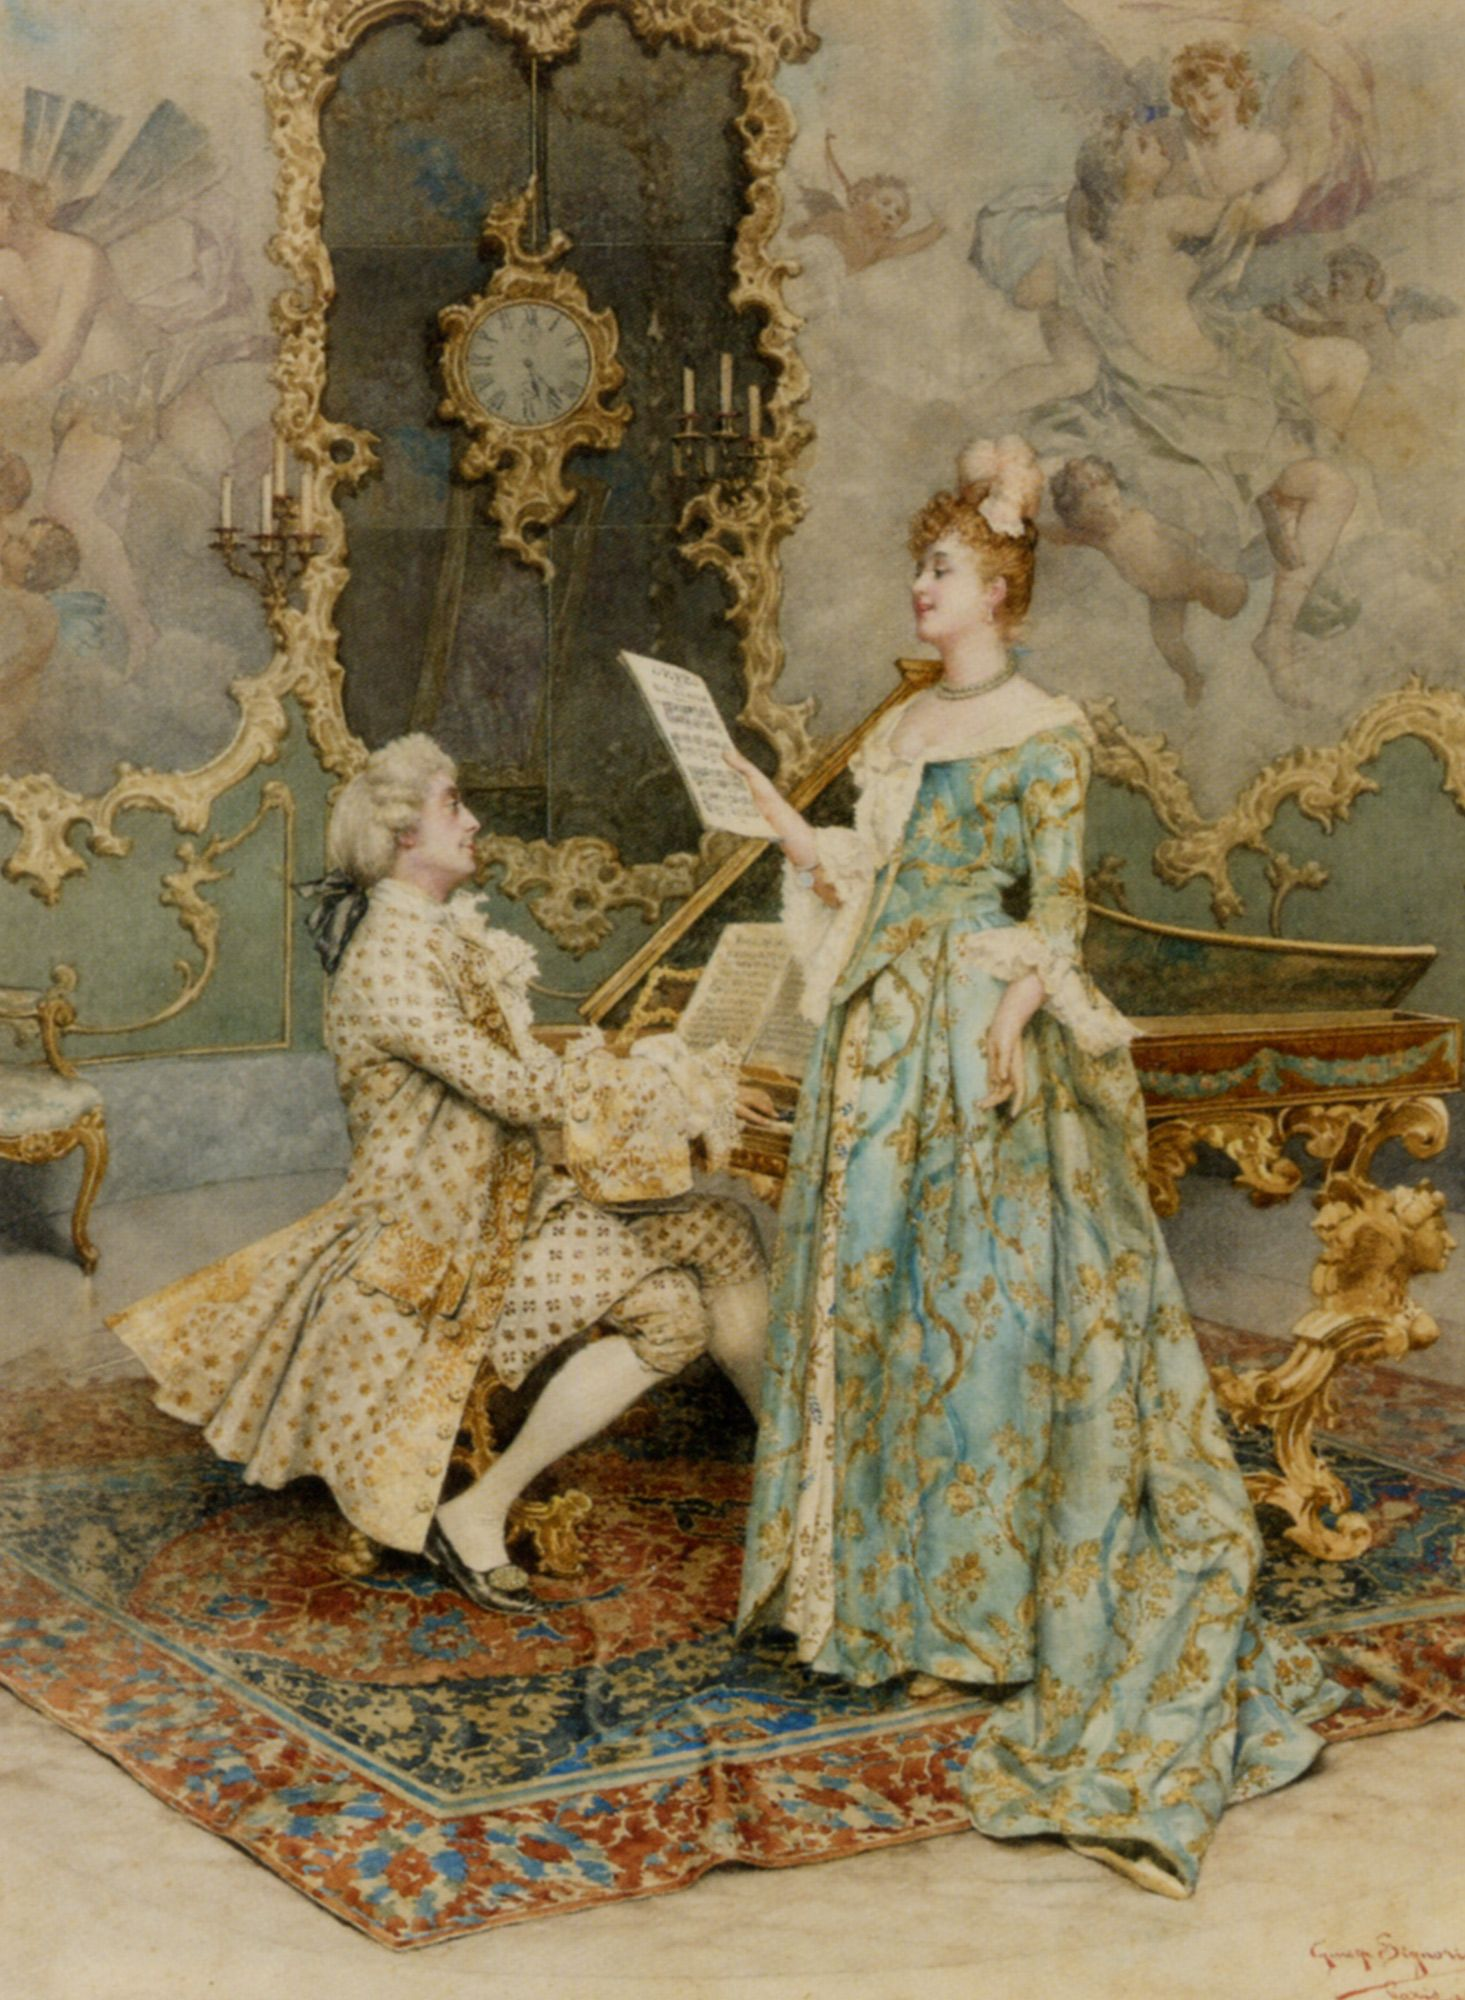 The Soloist Guiseppe Signorini Rococo Style Marie Antoinette - Rococo painting